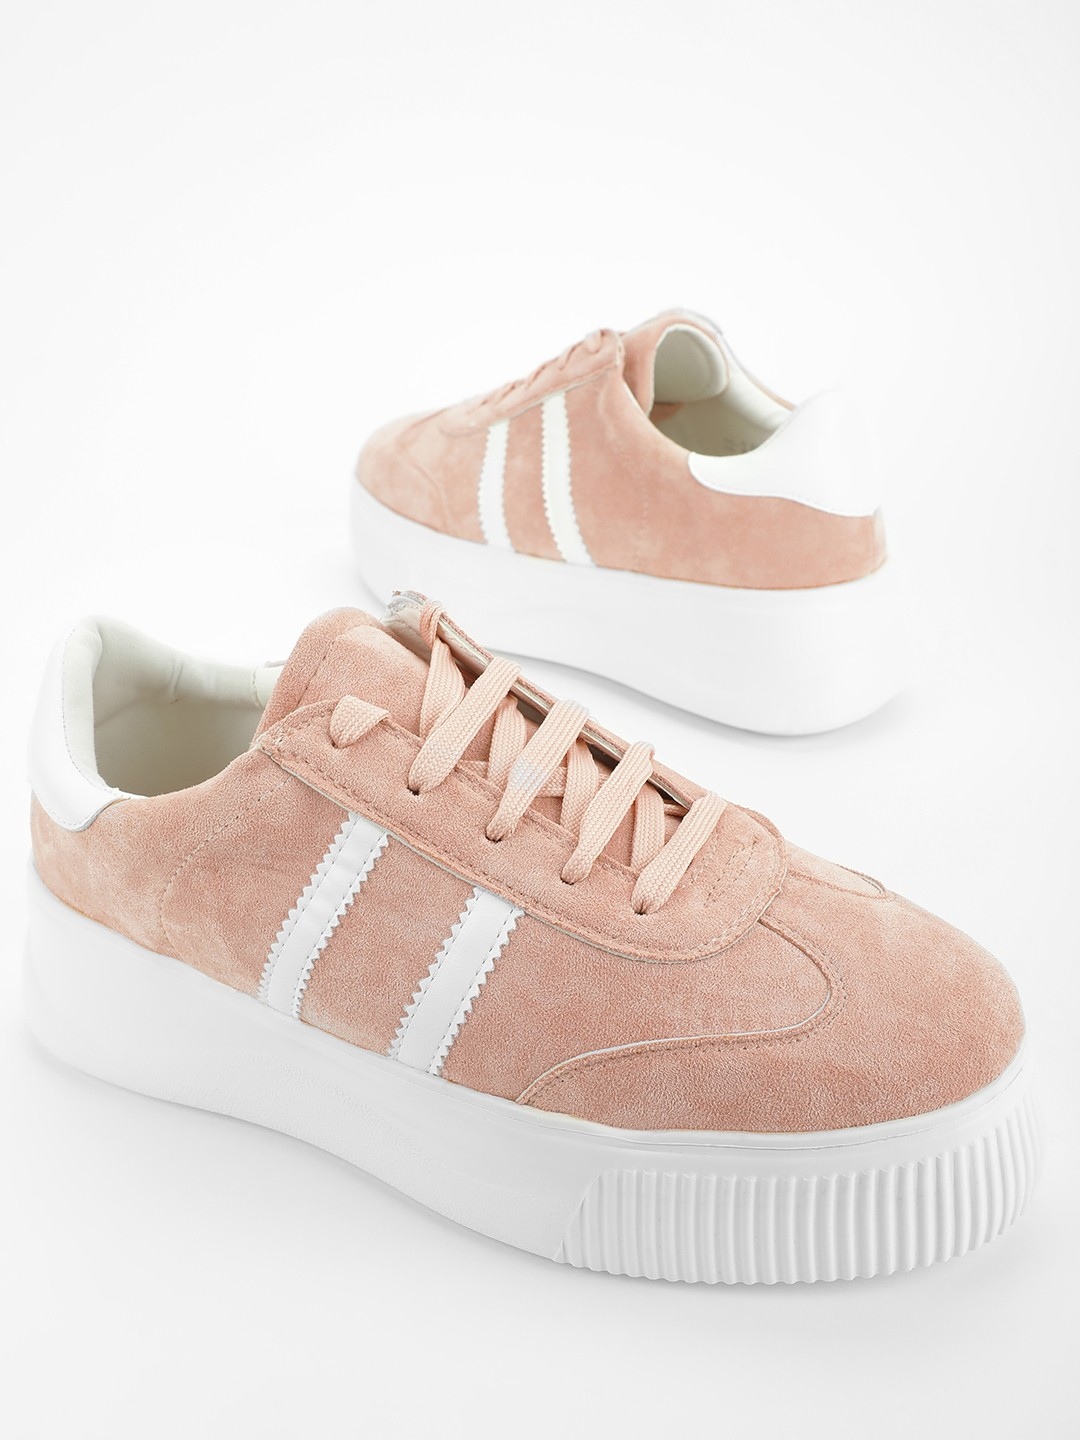 My Foot Couture Pink Suede Lace-Up Sneakers 1